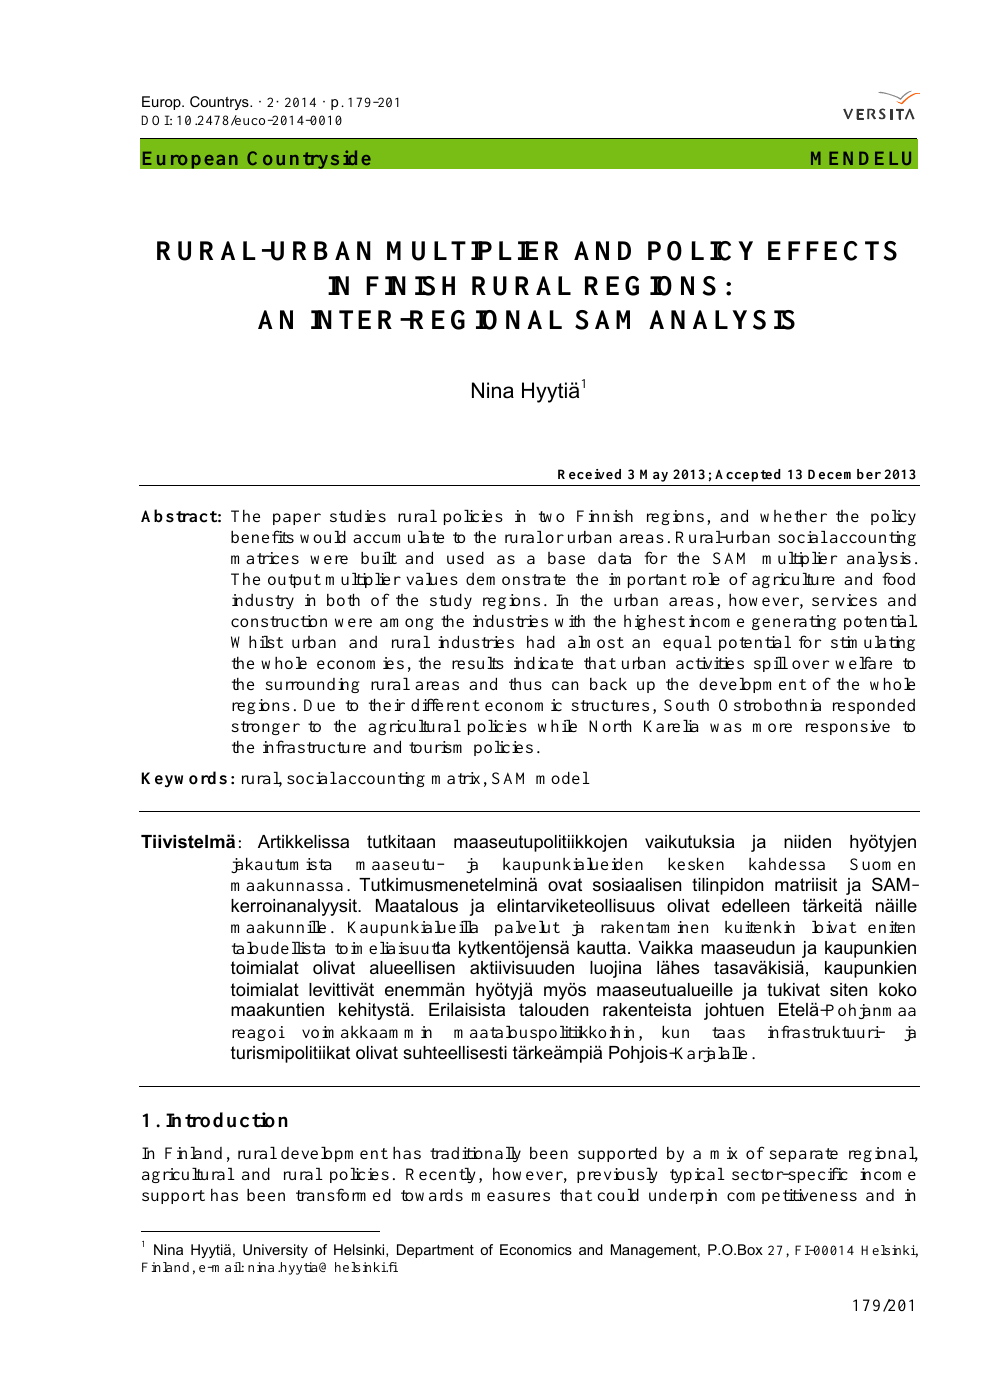 Rural-Urban Multiplier and Policy Effects in Finish Rural Regions